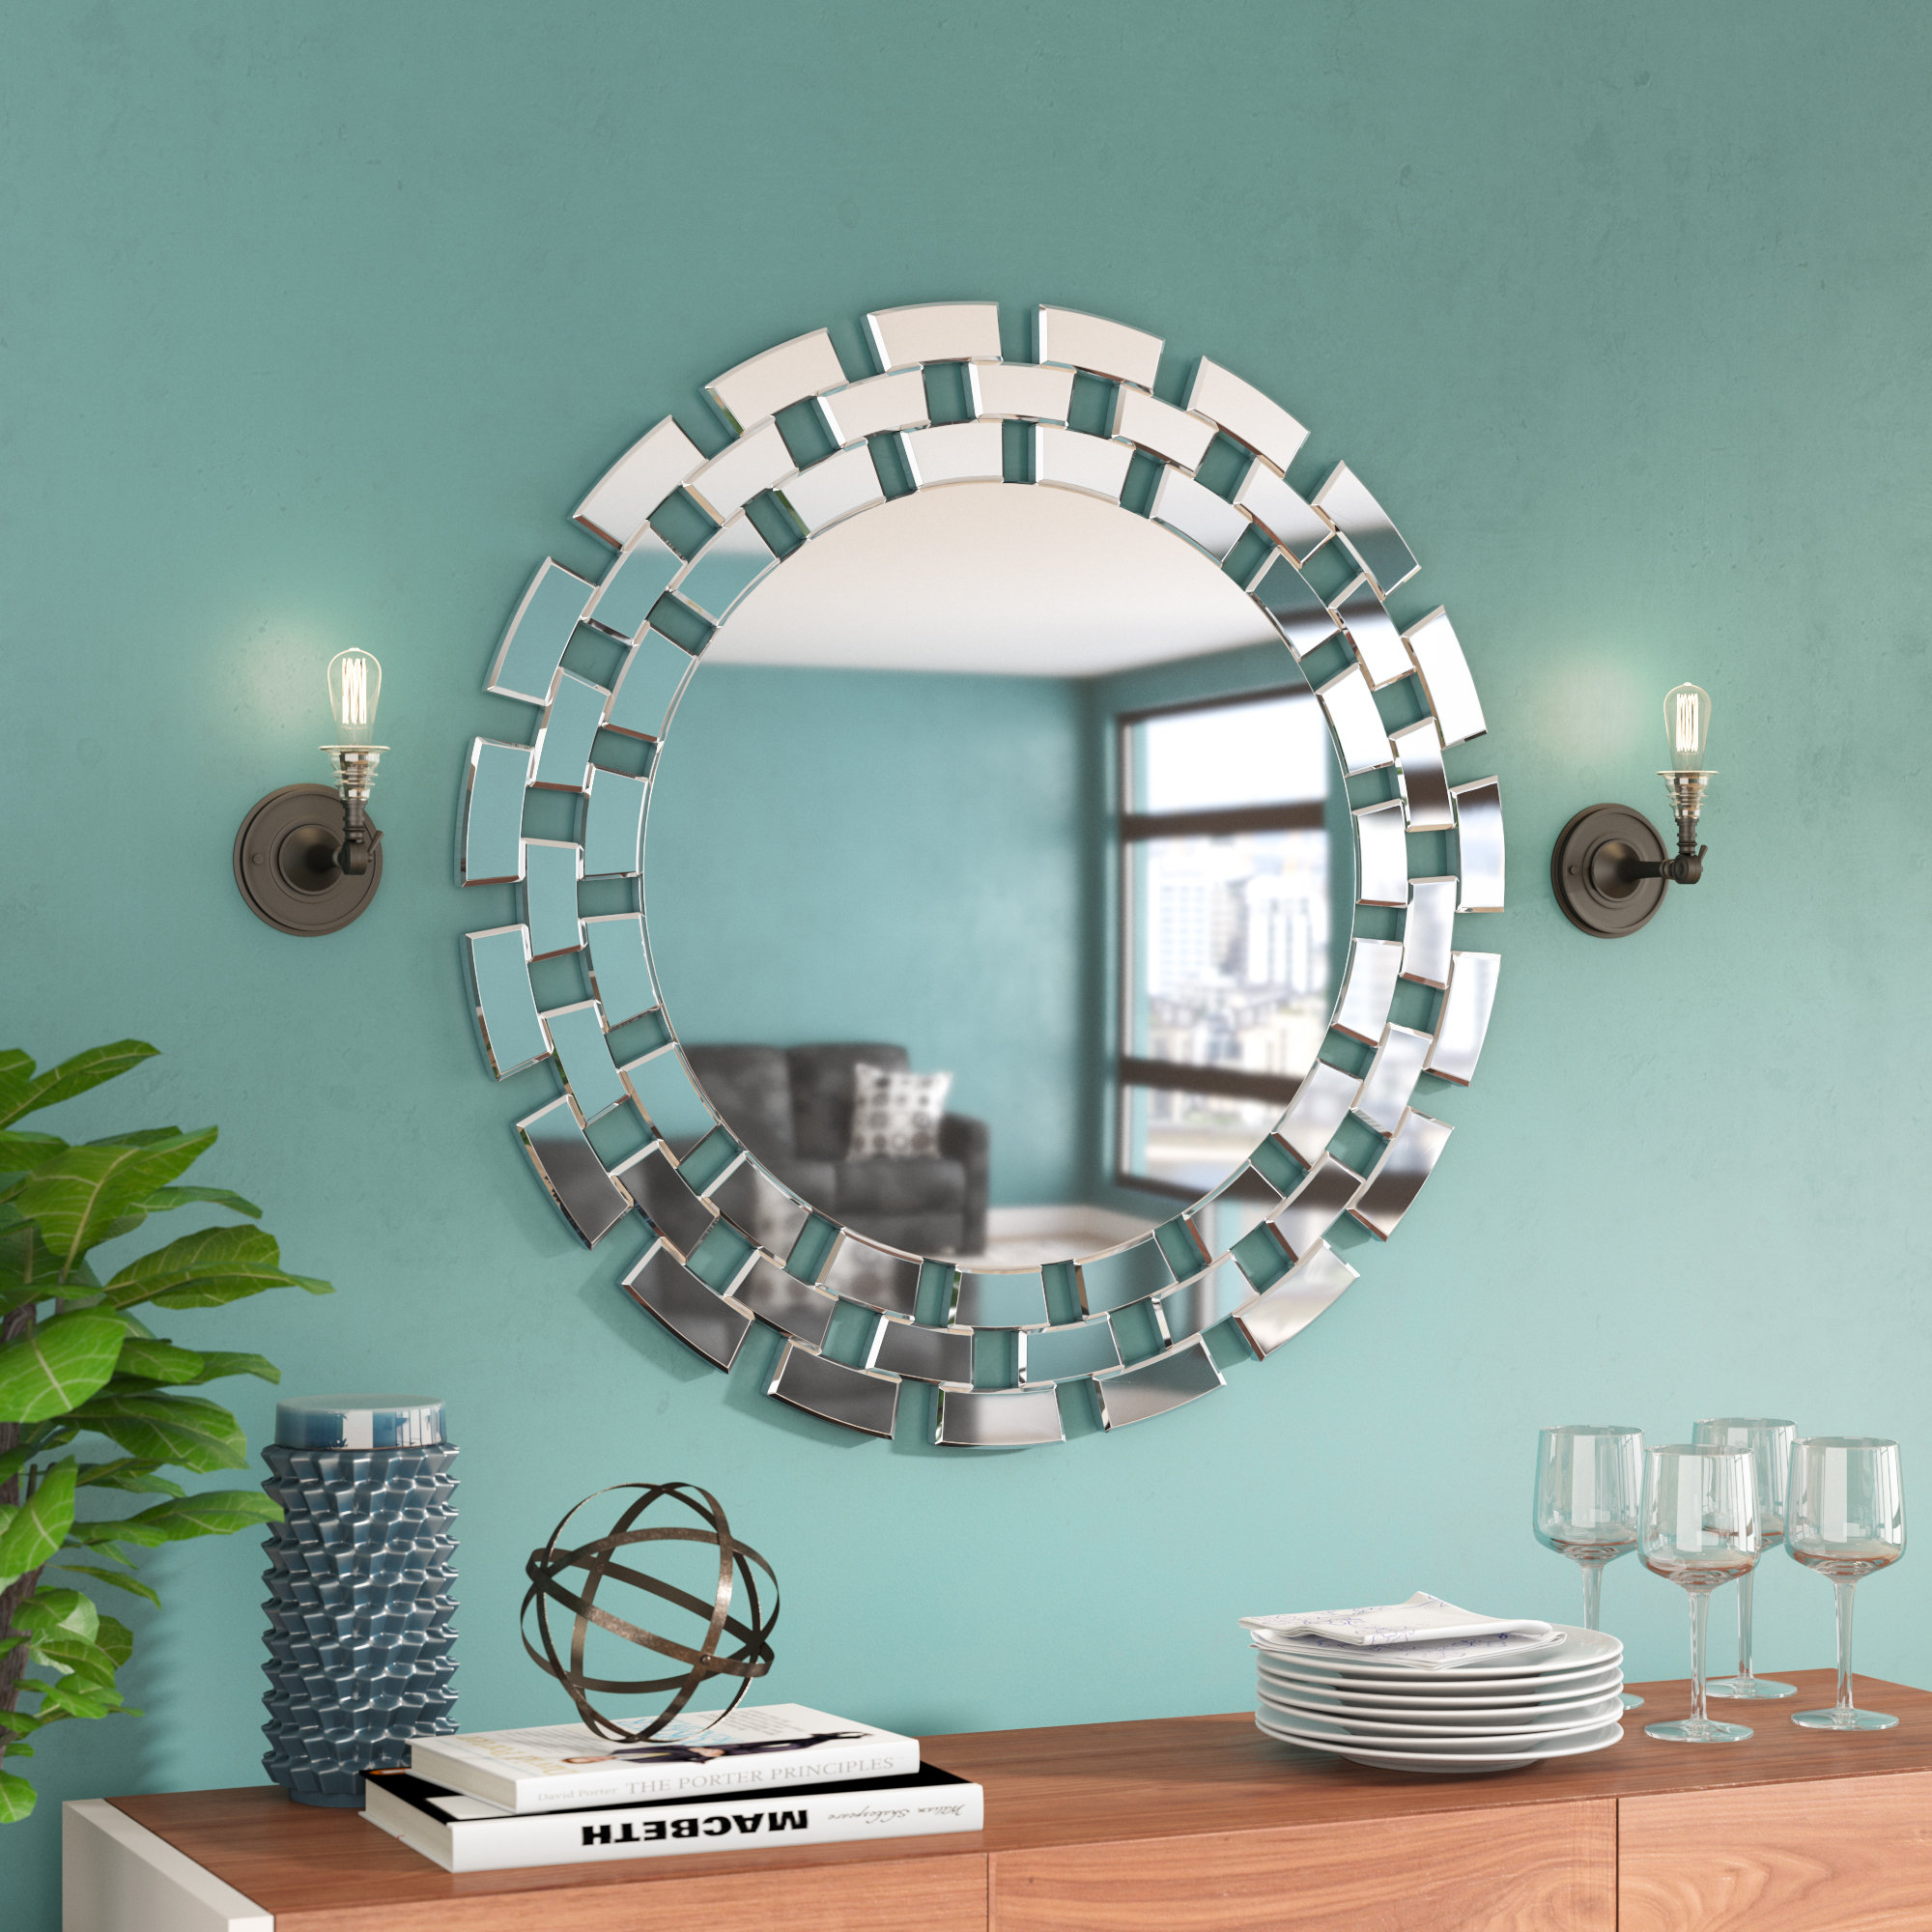 Round Glass Wall Accent Mirror Inside Tata Openwork Round Wall Mirrors (View 23 of 30)